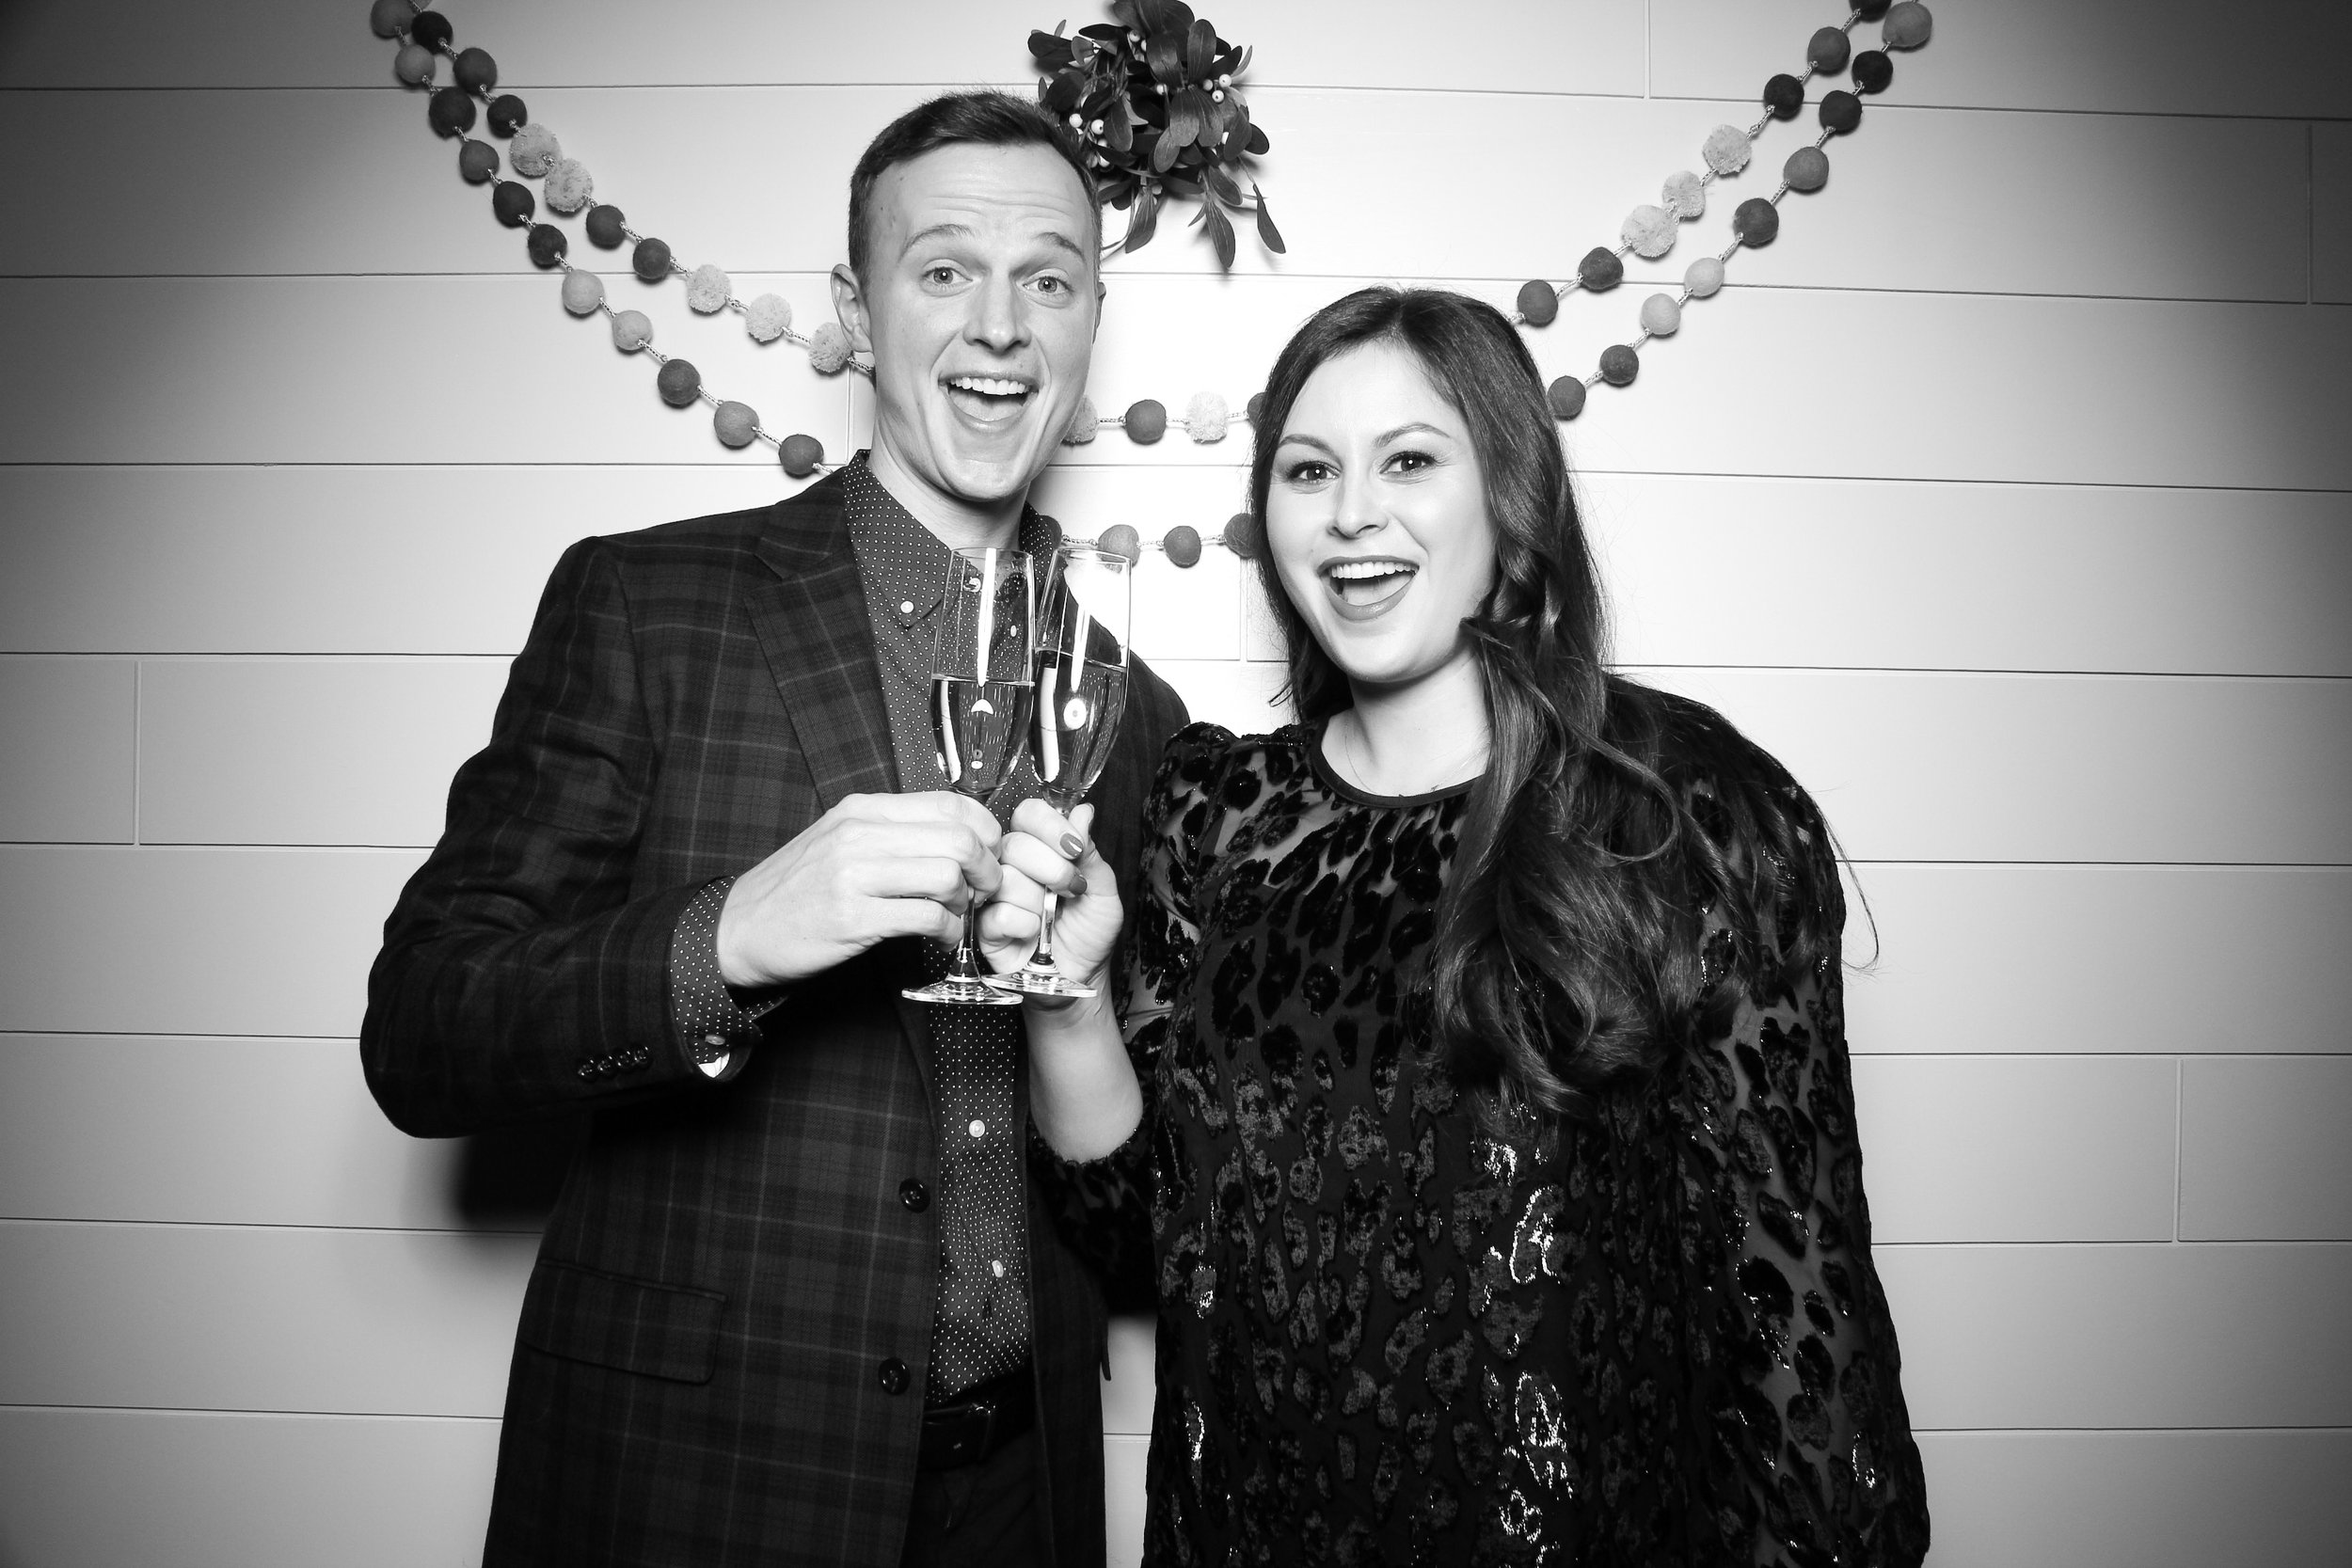 Chicago_Vintage_Photobooth_Christmas_Holiday_Party_05.jpg